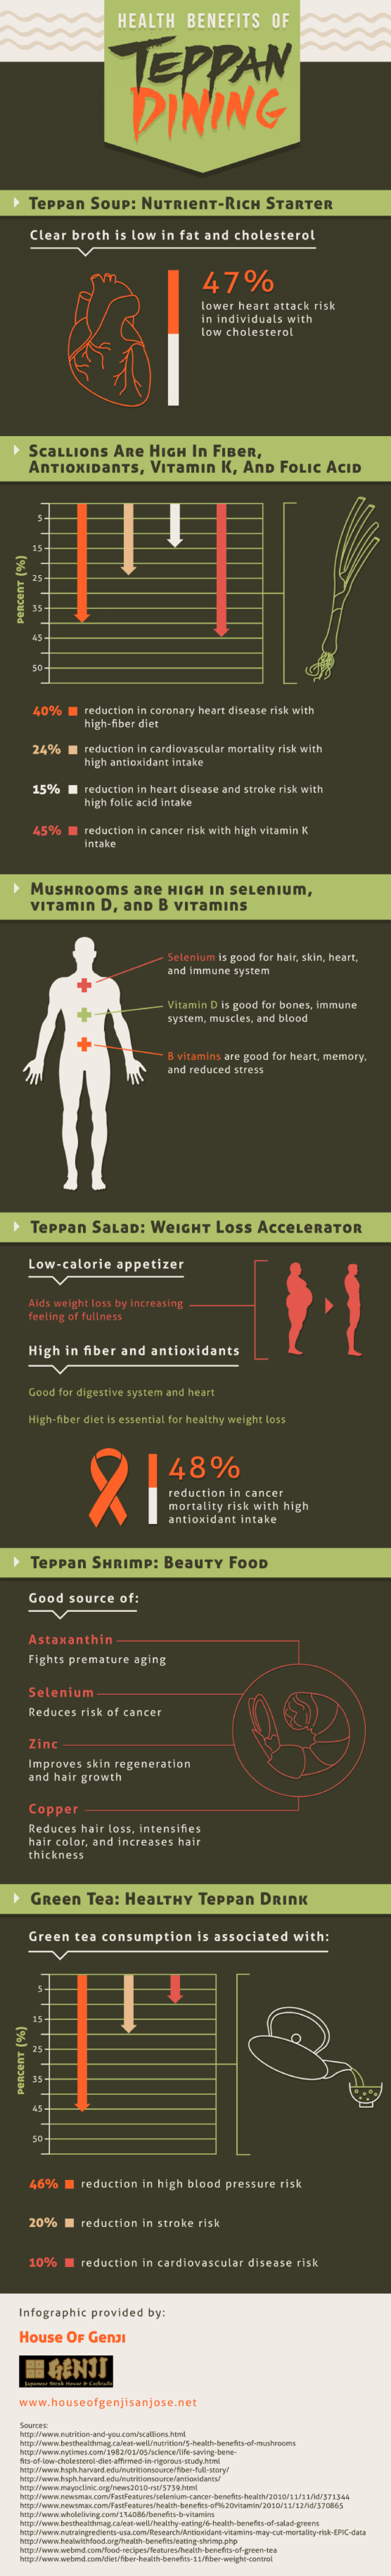 Health Benefits of Teppan Dining Infographic